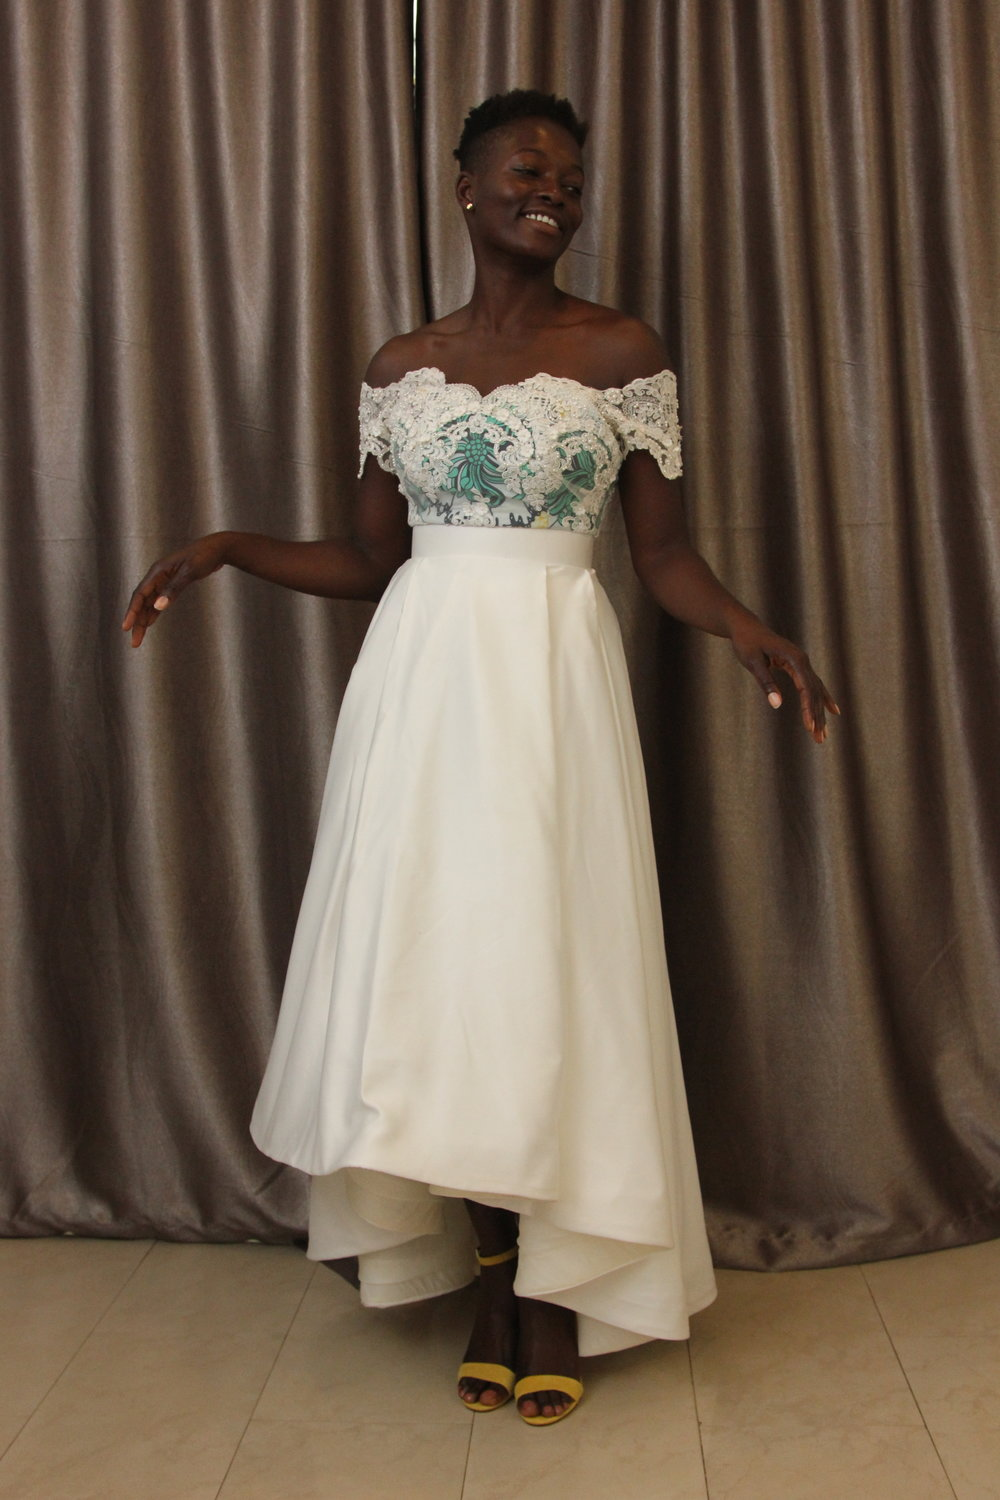 Chidiogo at her second dress fitting at the Wanger Ayu studio.